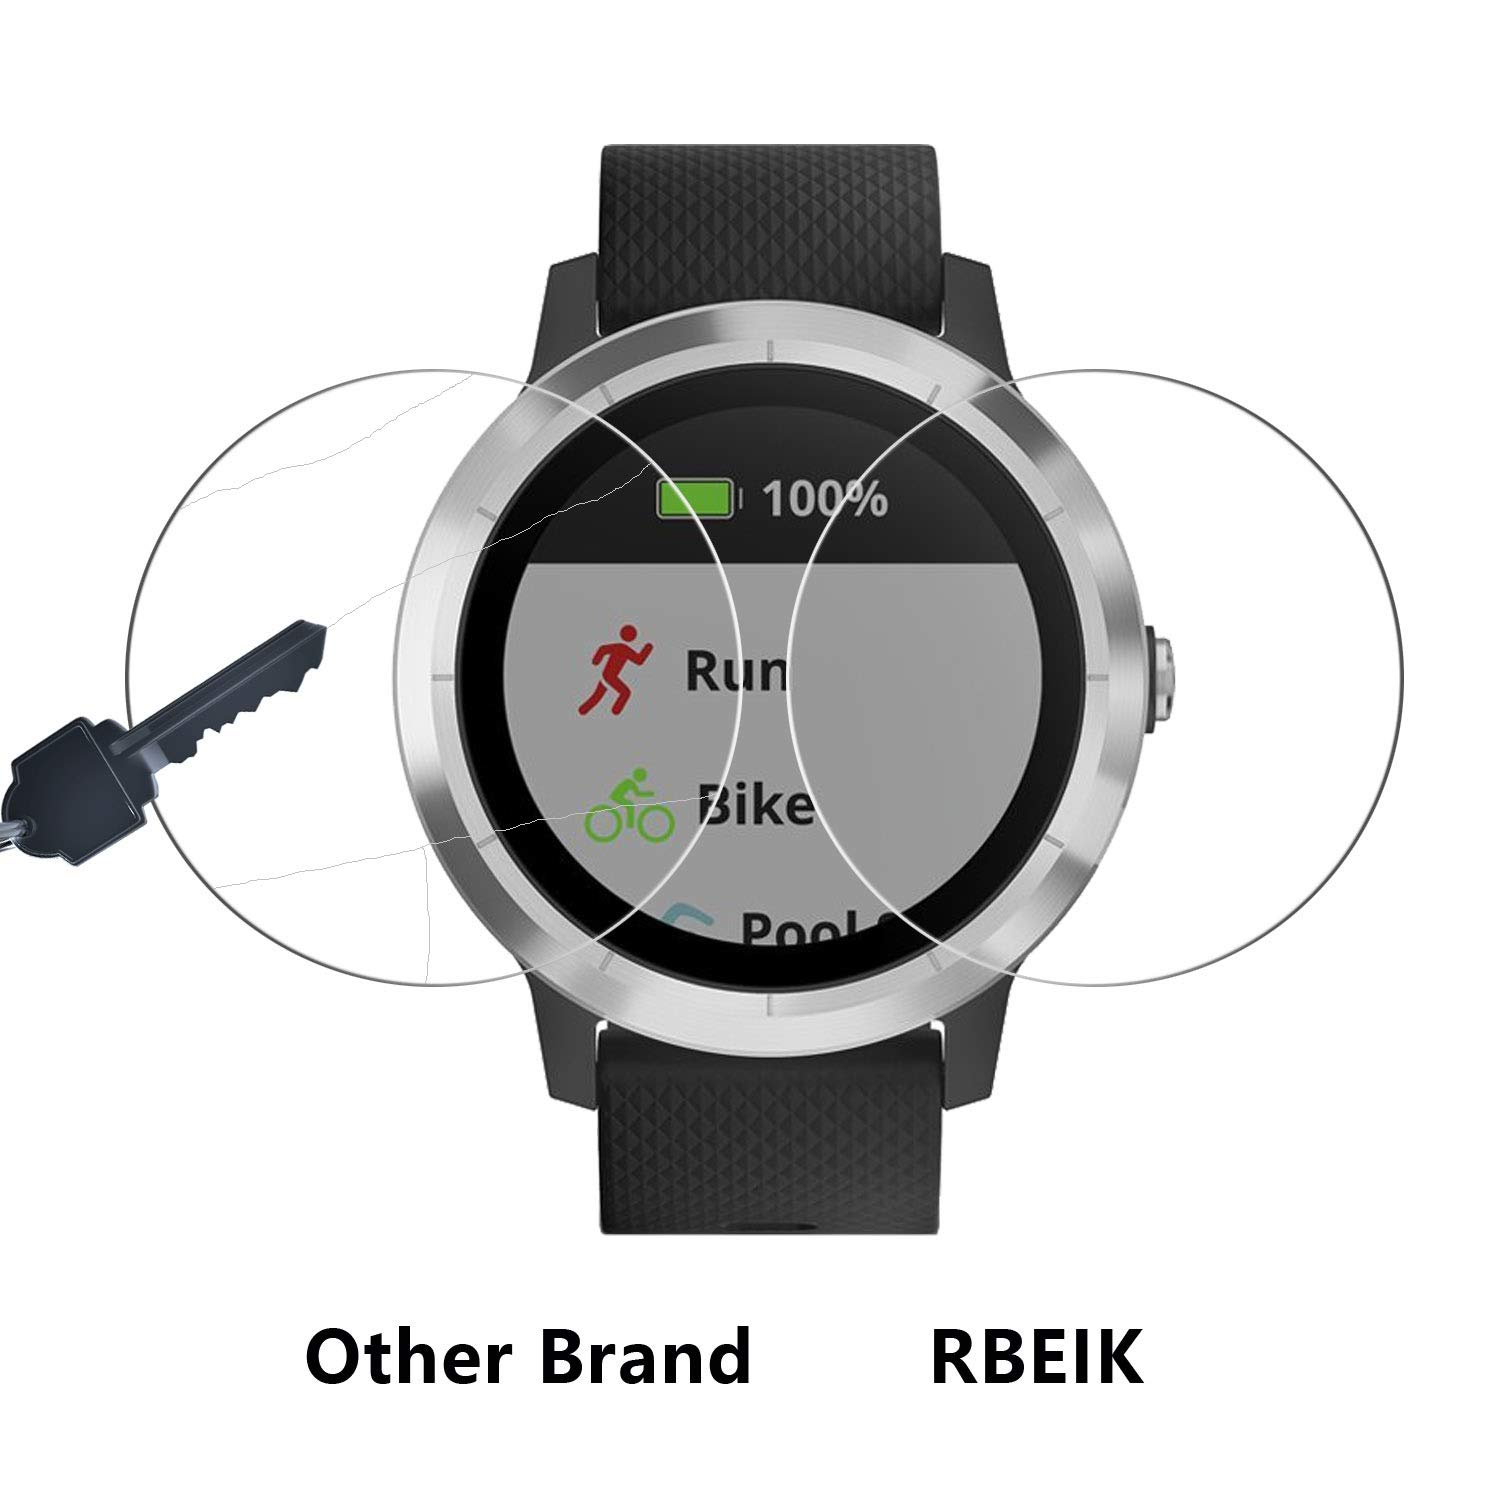 RBEIK Garmin Vivoactive 3 Screen Protector Glass - [3 Pack] Premium 9H Hardness Tempered Glass Screen Protector for Garmin vívoactive 3 Smartwatch ...